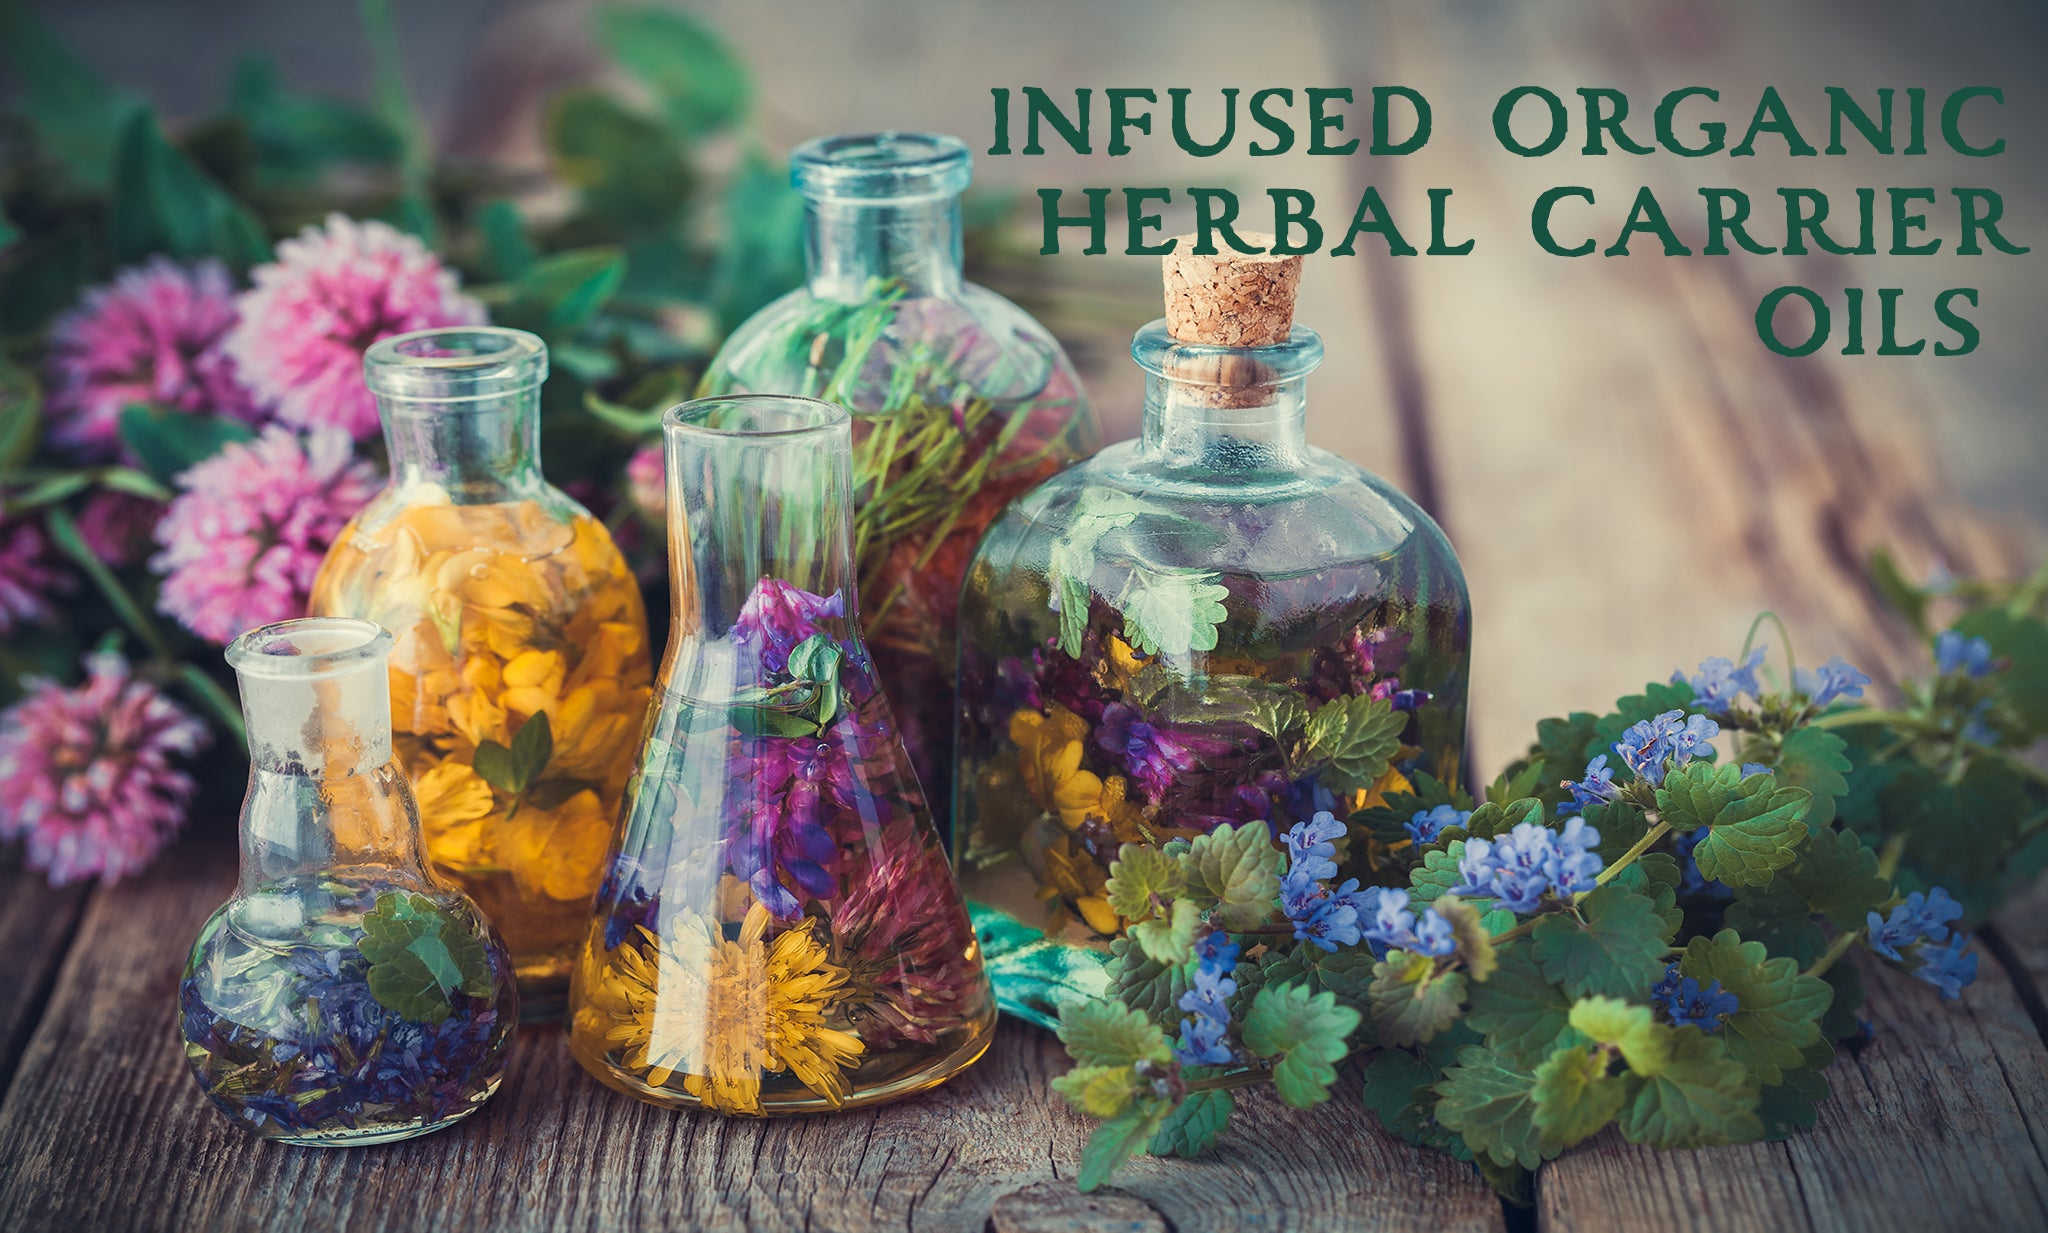 certified organic plant-based vegetable infused carrier oils by Wingsets